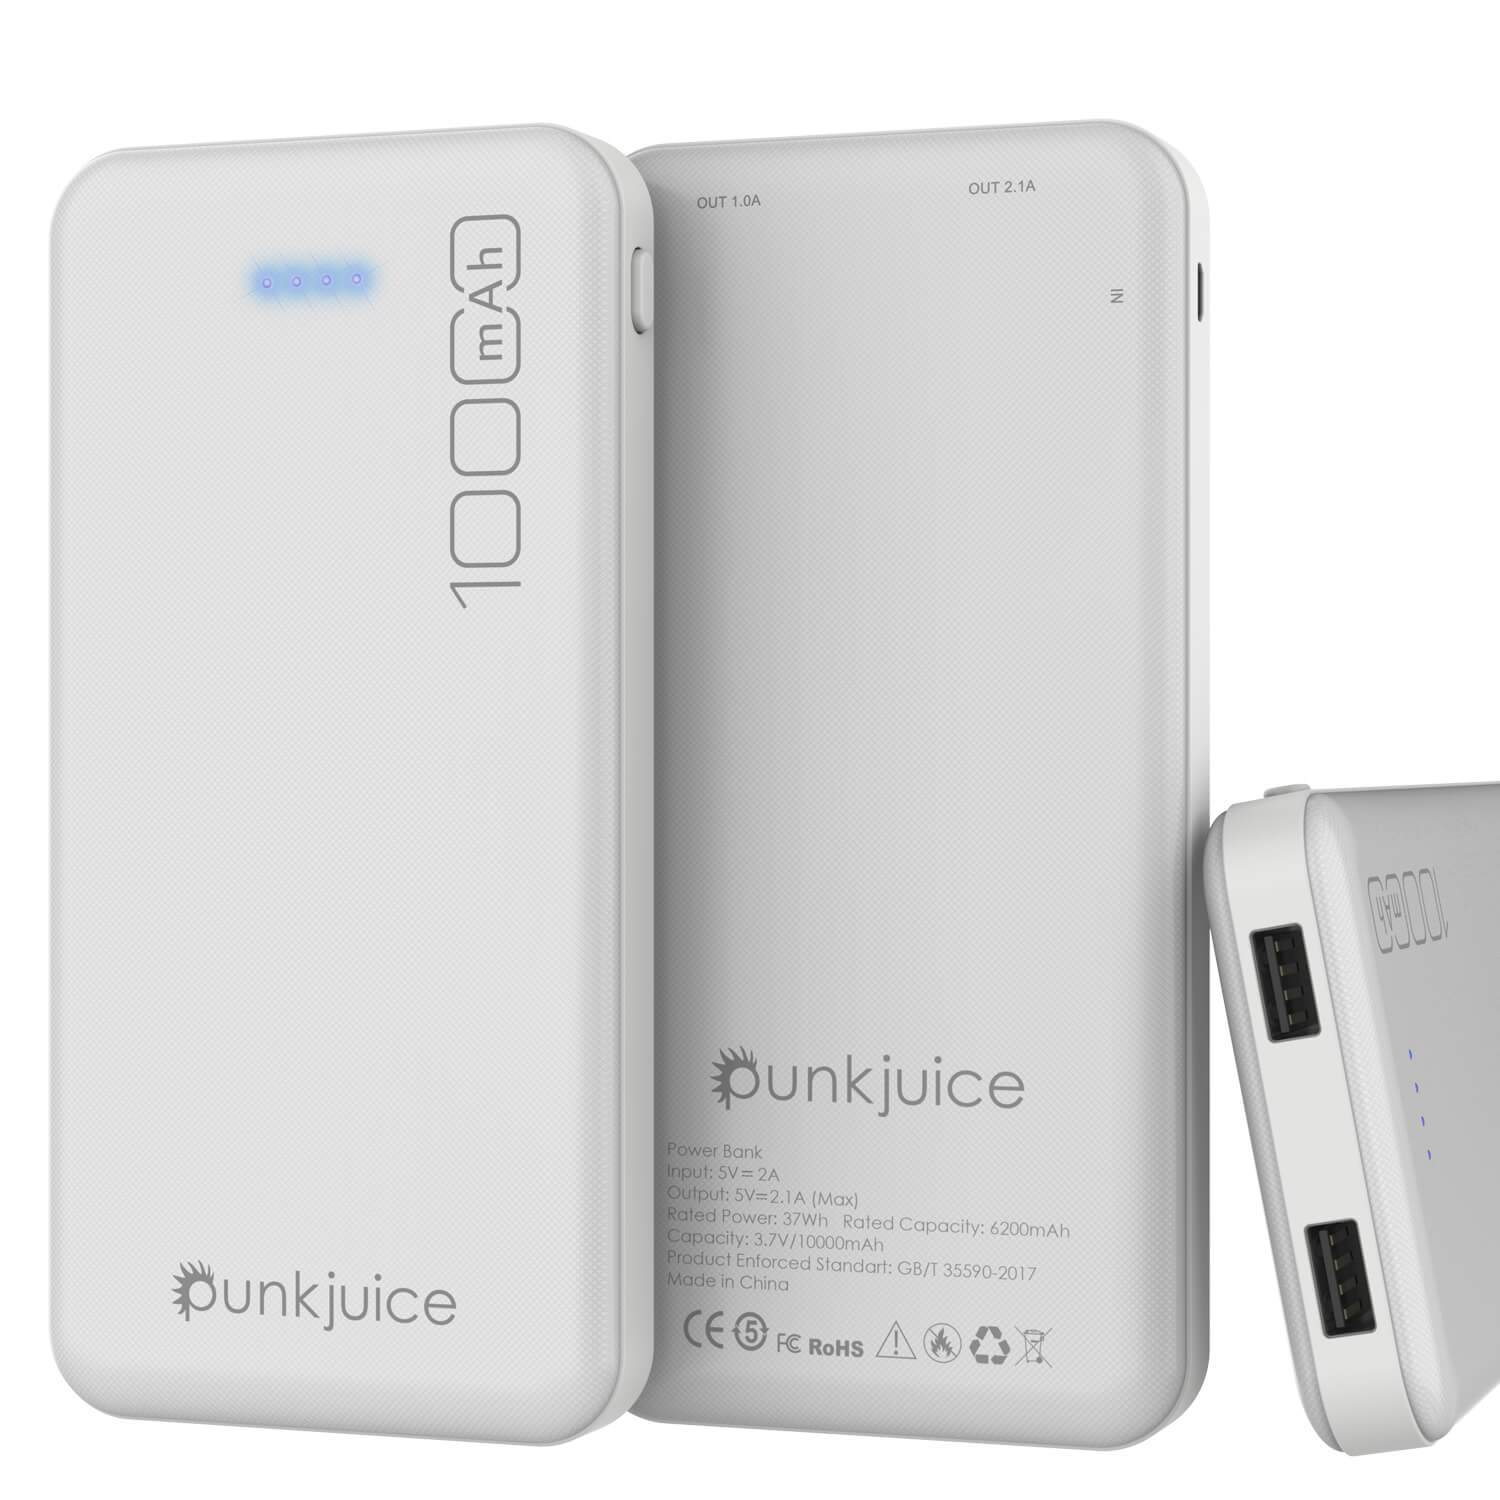 PunkCase Wireless PowerBank Battery Pack for iPhone X/XS/Max/XR / 11/10, iPad, Samsung Galaxy S10 / S9 and Many More [White]